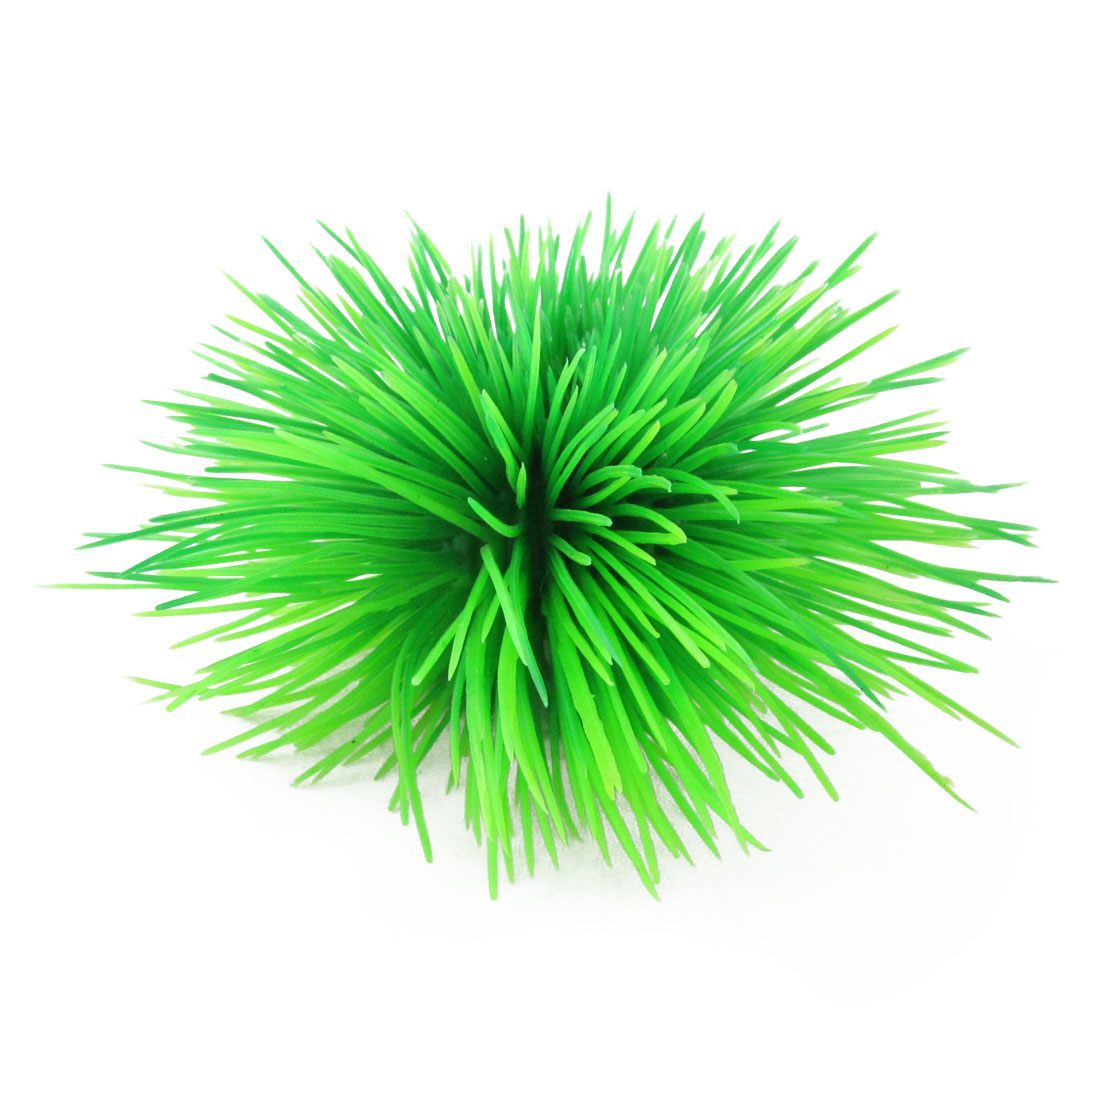 Round Ceramic Base Green Needle Like Leaves Plastic Grass for Fish Tank